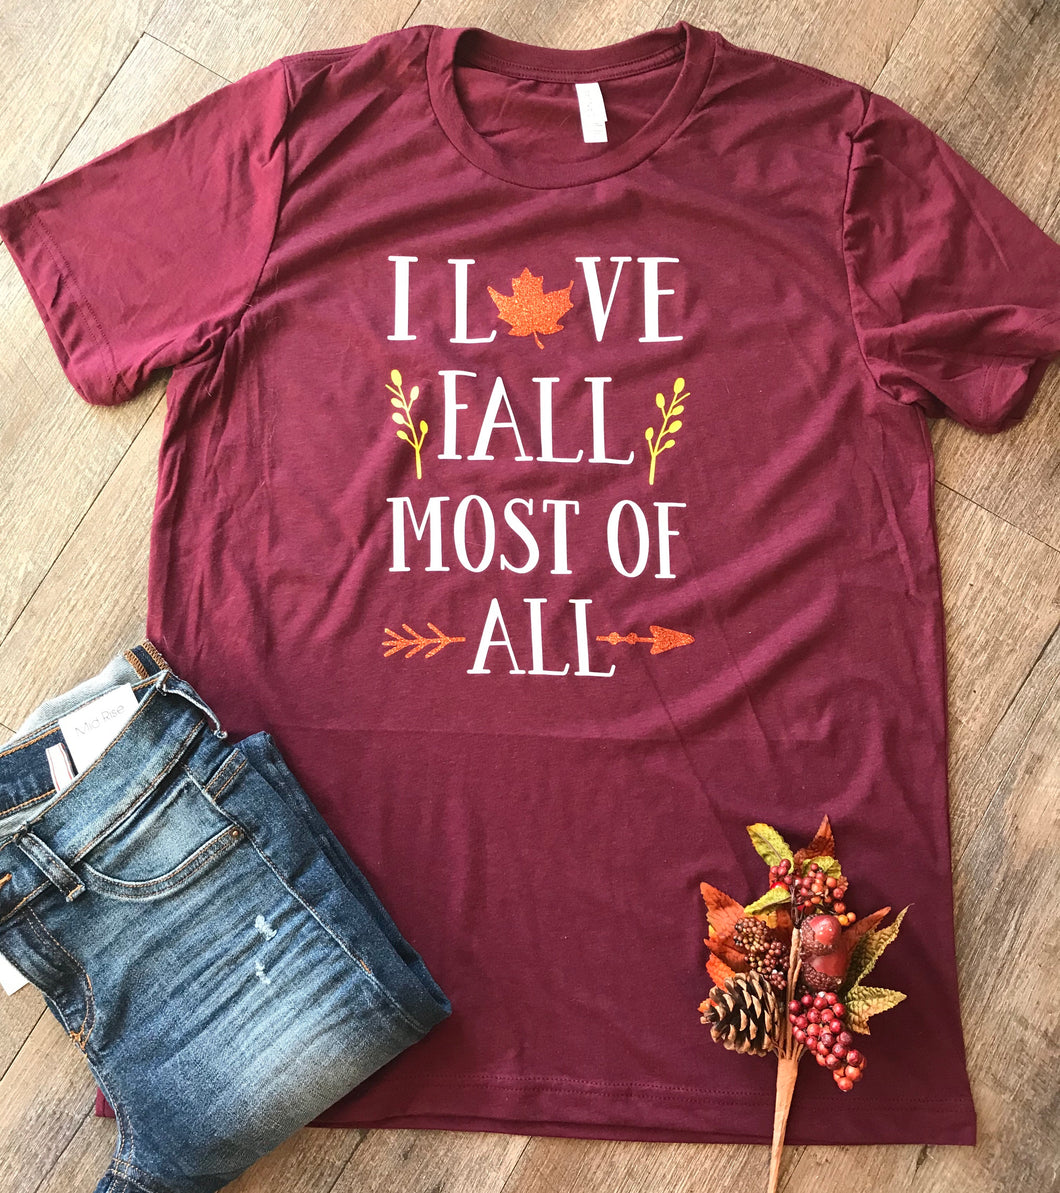 I love fall most of all perfect fall graphic tee - Mavictoria Designs Hot Press Express